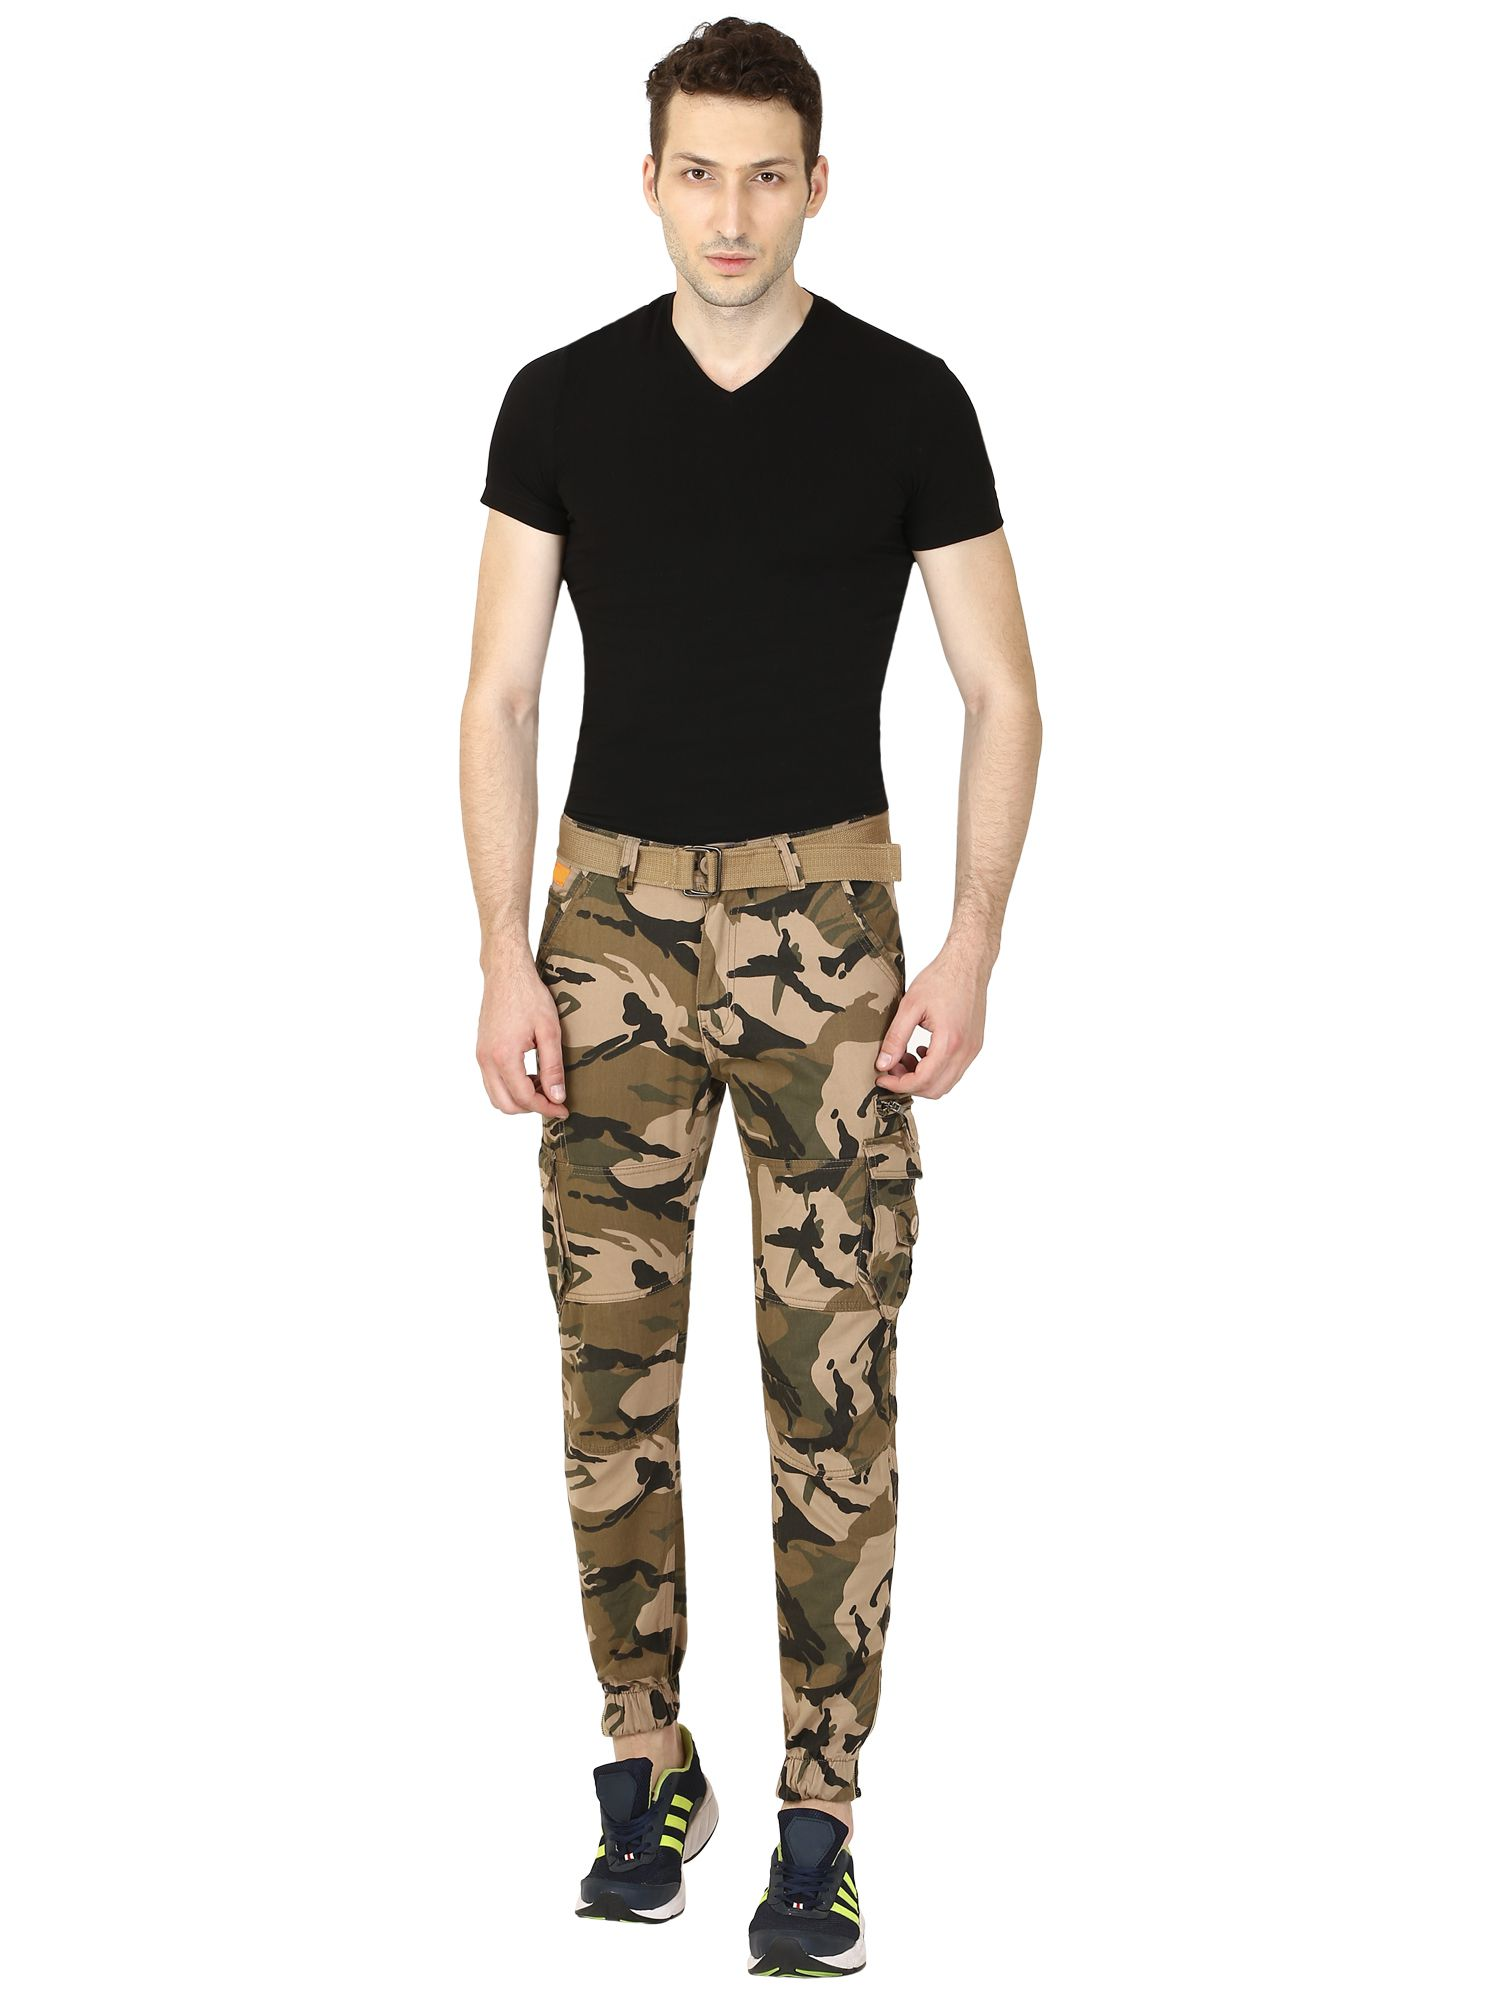 Verticals ARMY PRINT CARGO FOR MEN(joggers style) …